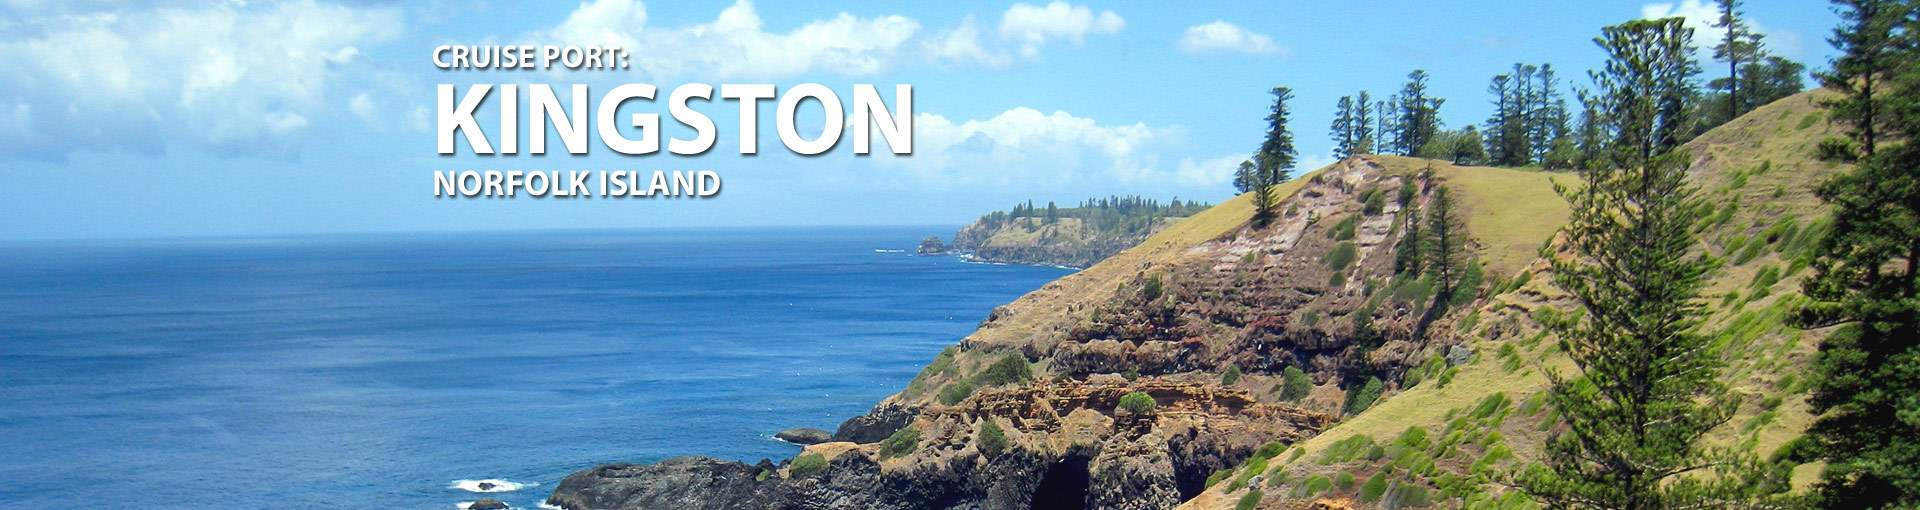 Kingston, Norfolk Island Cruise Port